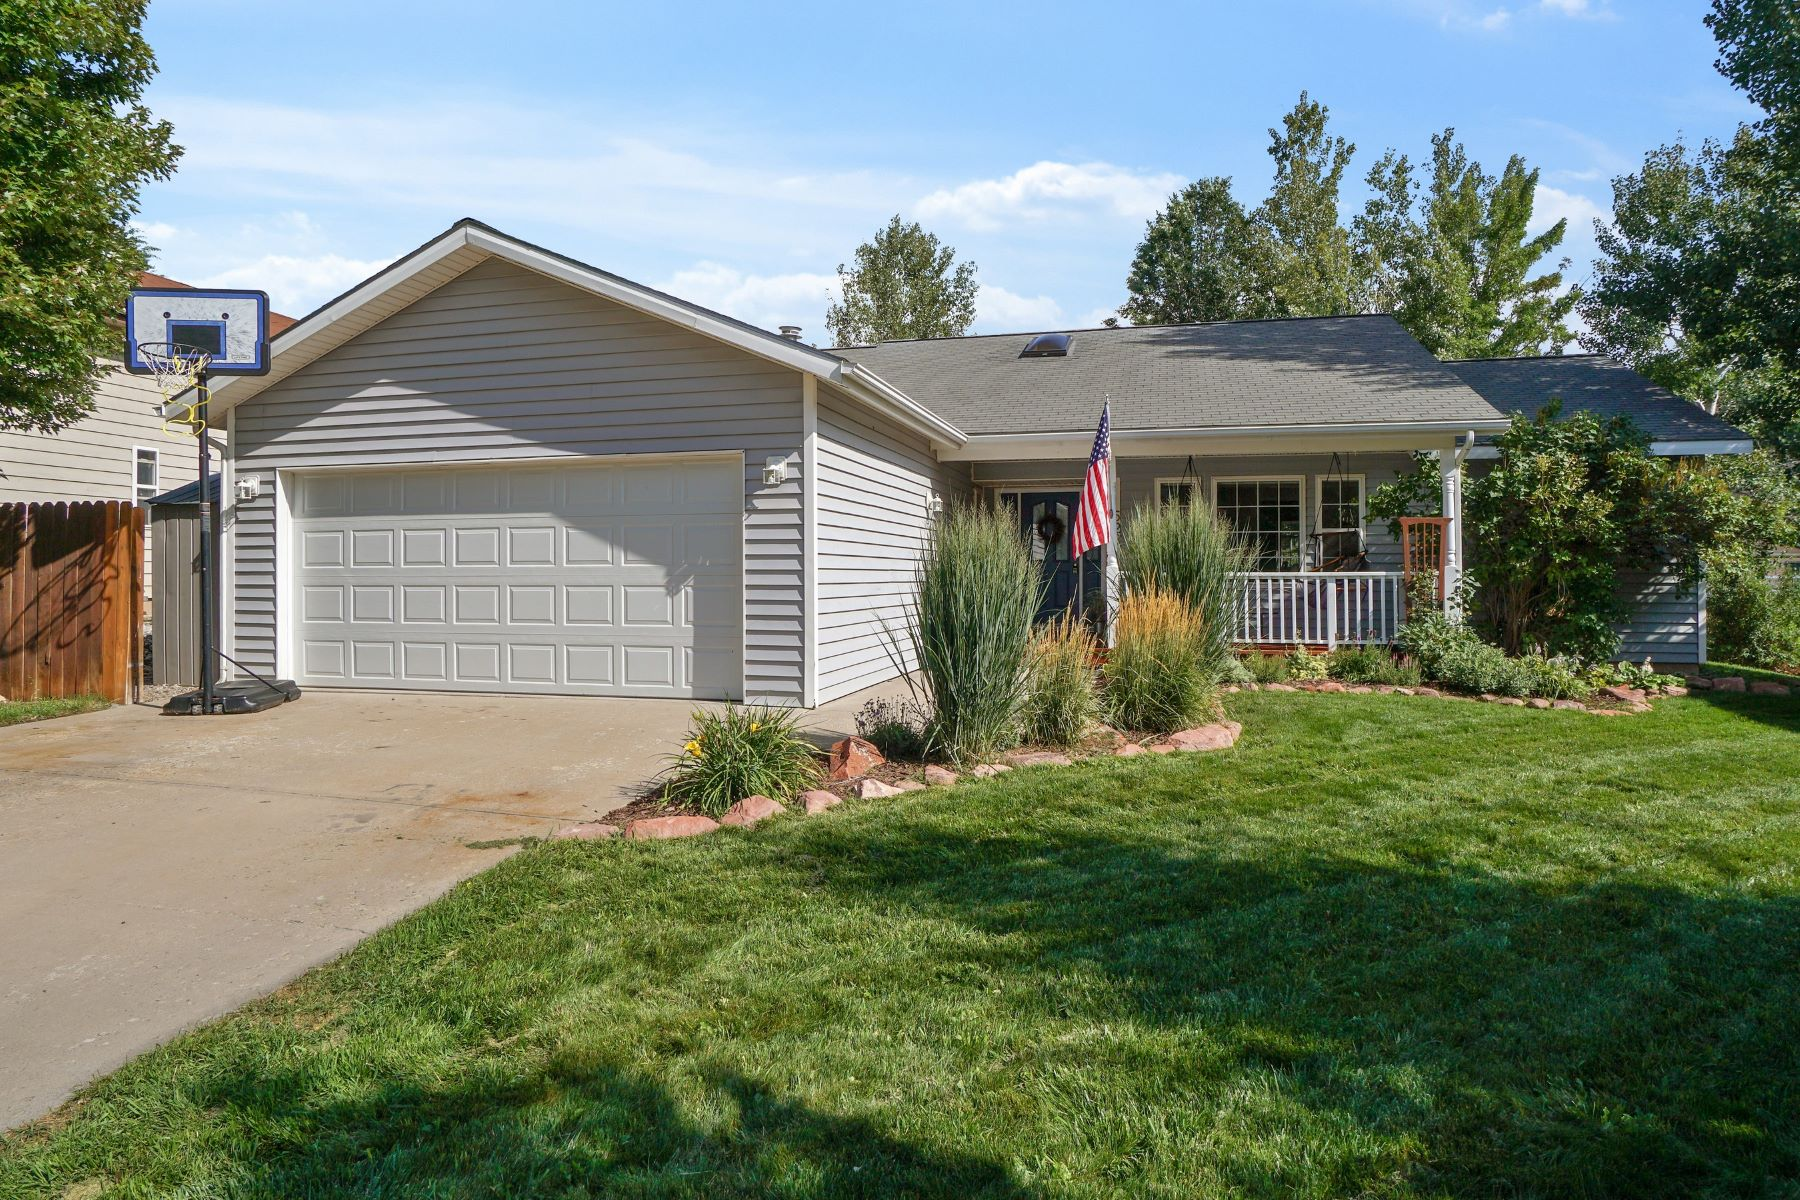 Single Family Home for Active at Meticulously Maintained Ranch-Style Home 528 Honeysuckle Drive New Castle, Colorado 81647 United States